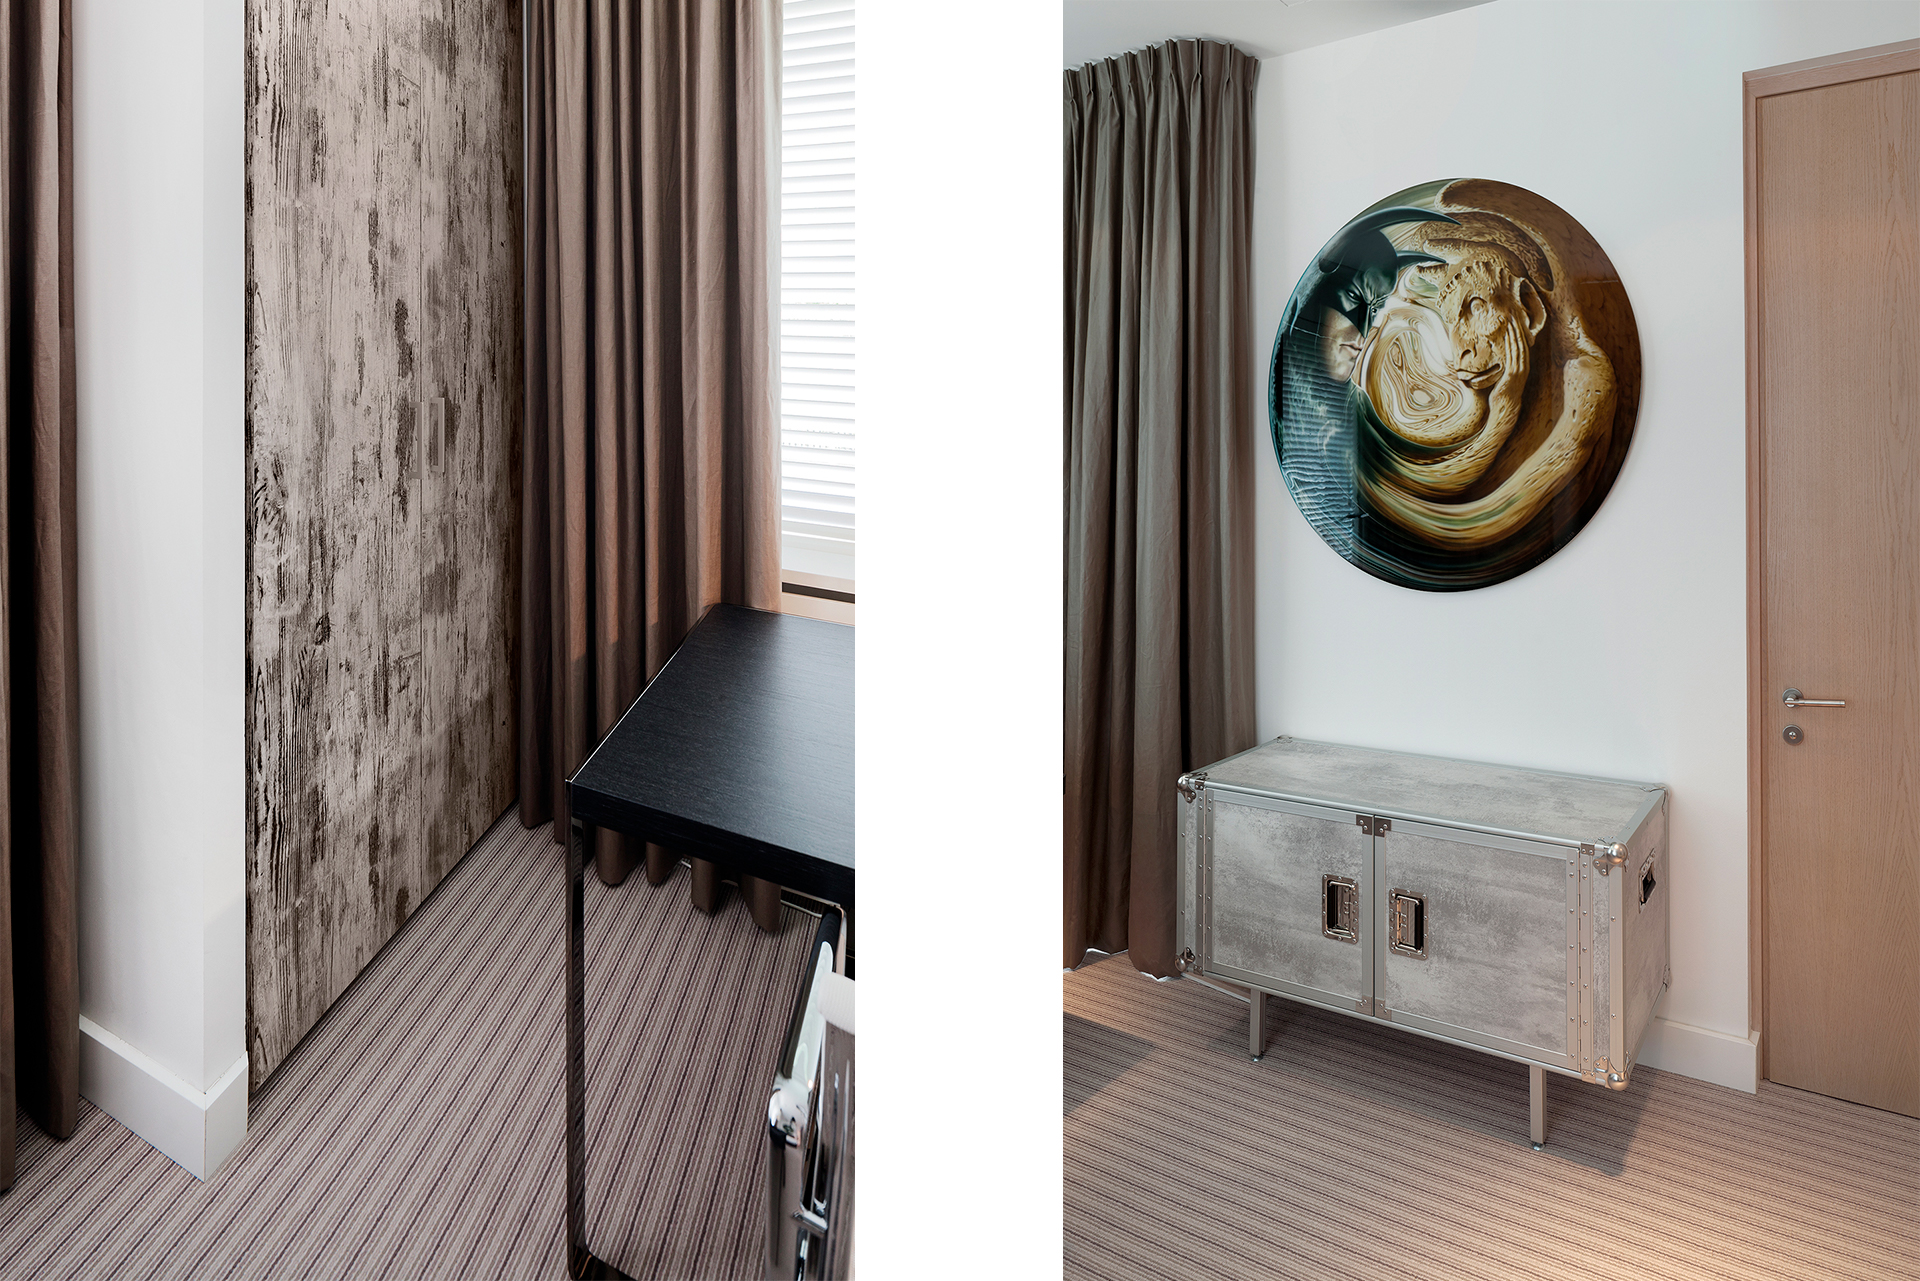 Details from one of the guestrooms with hidden closet and disc art